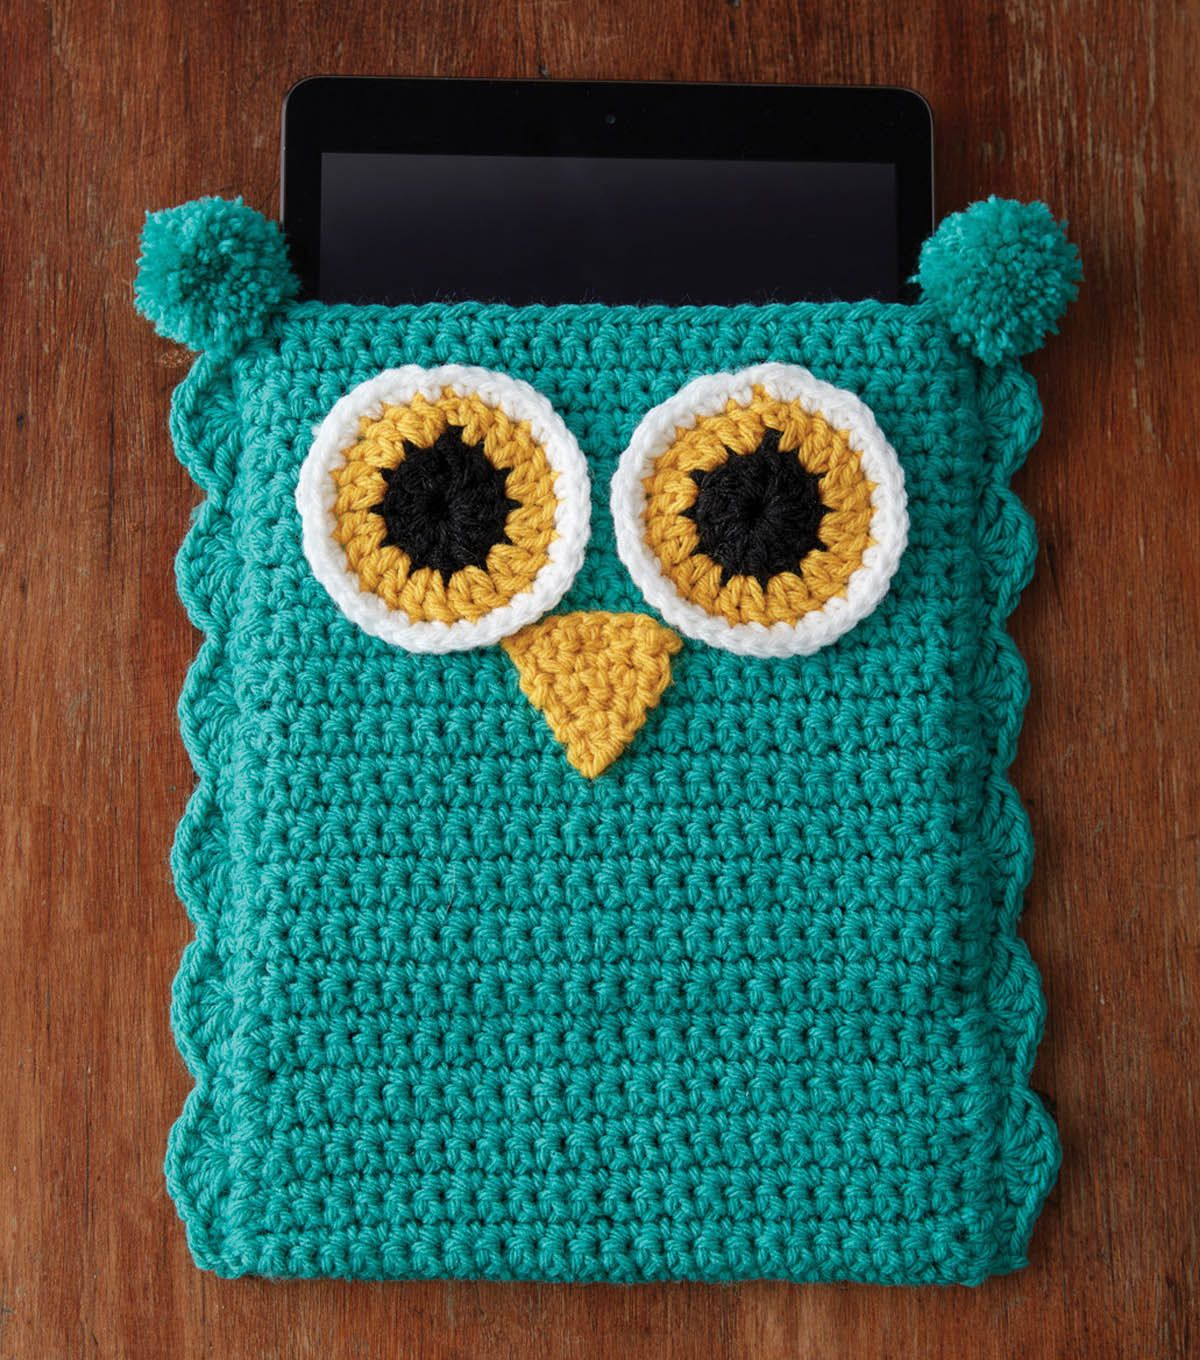 Cute Owl Tablet Cover: FREE crochet pattern … | crochet …